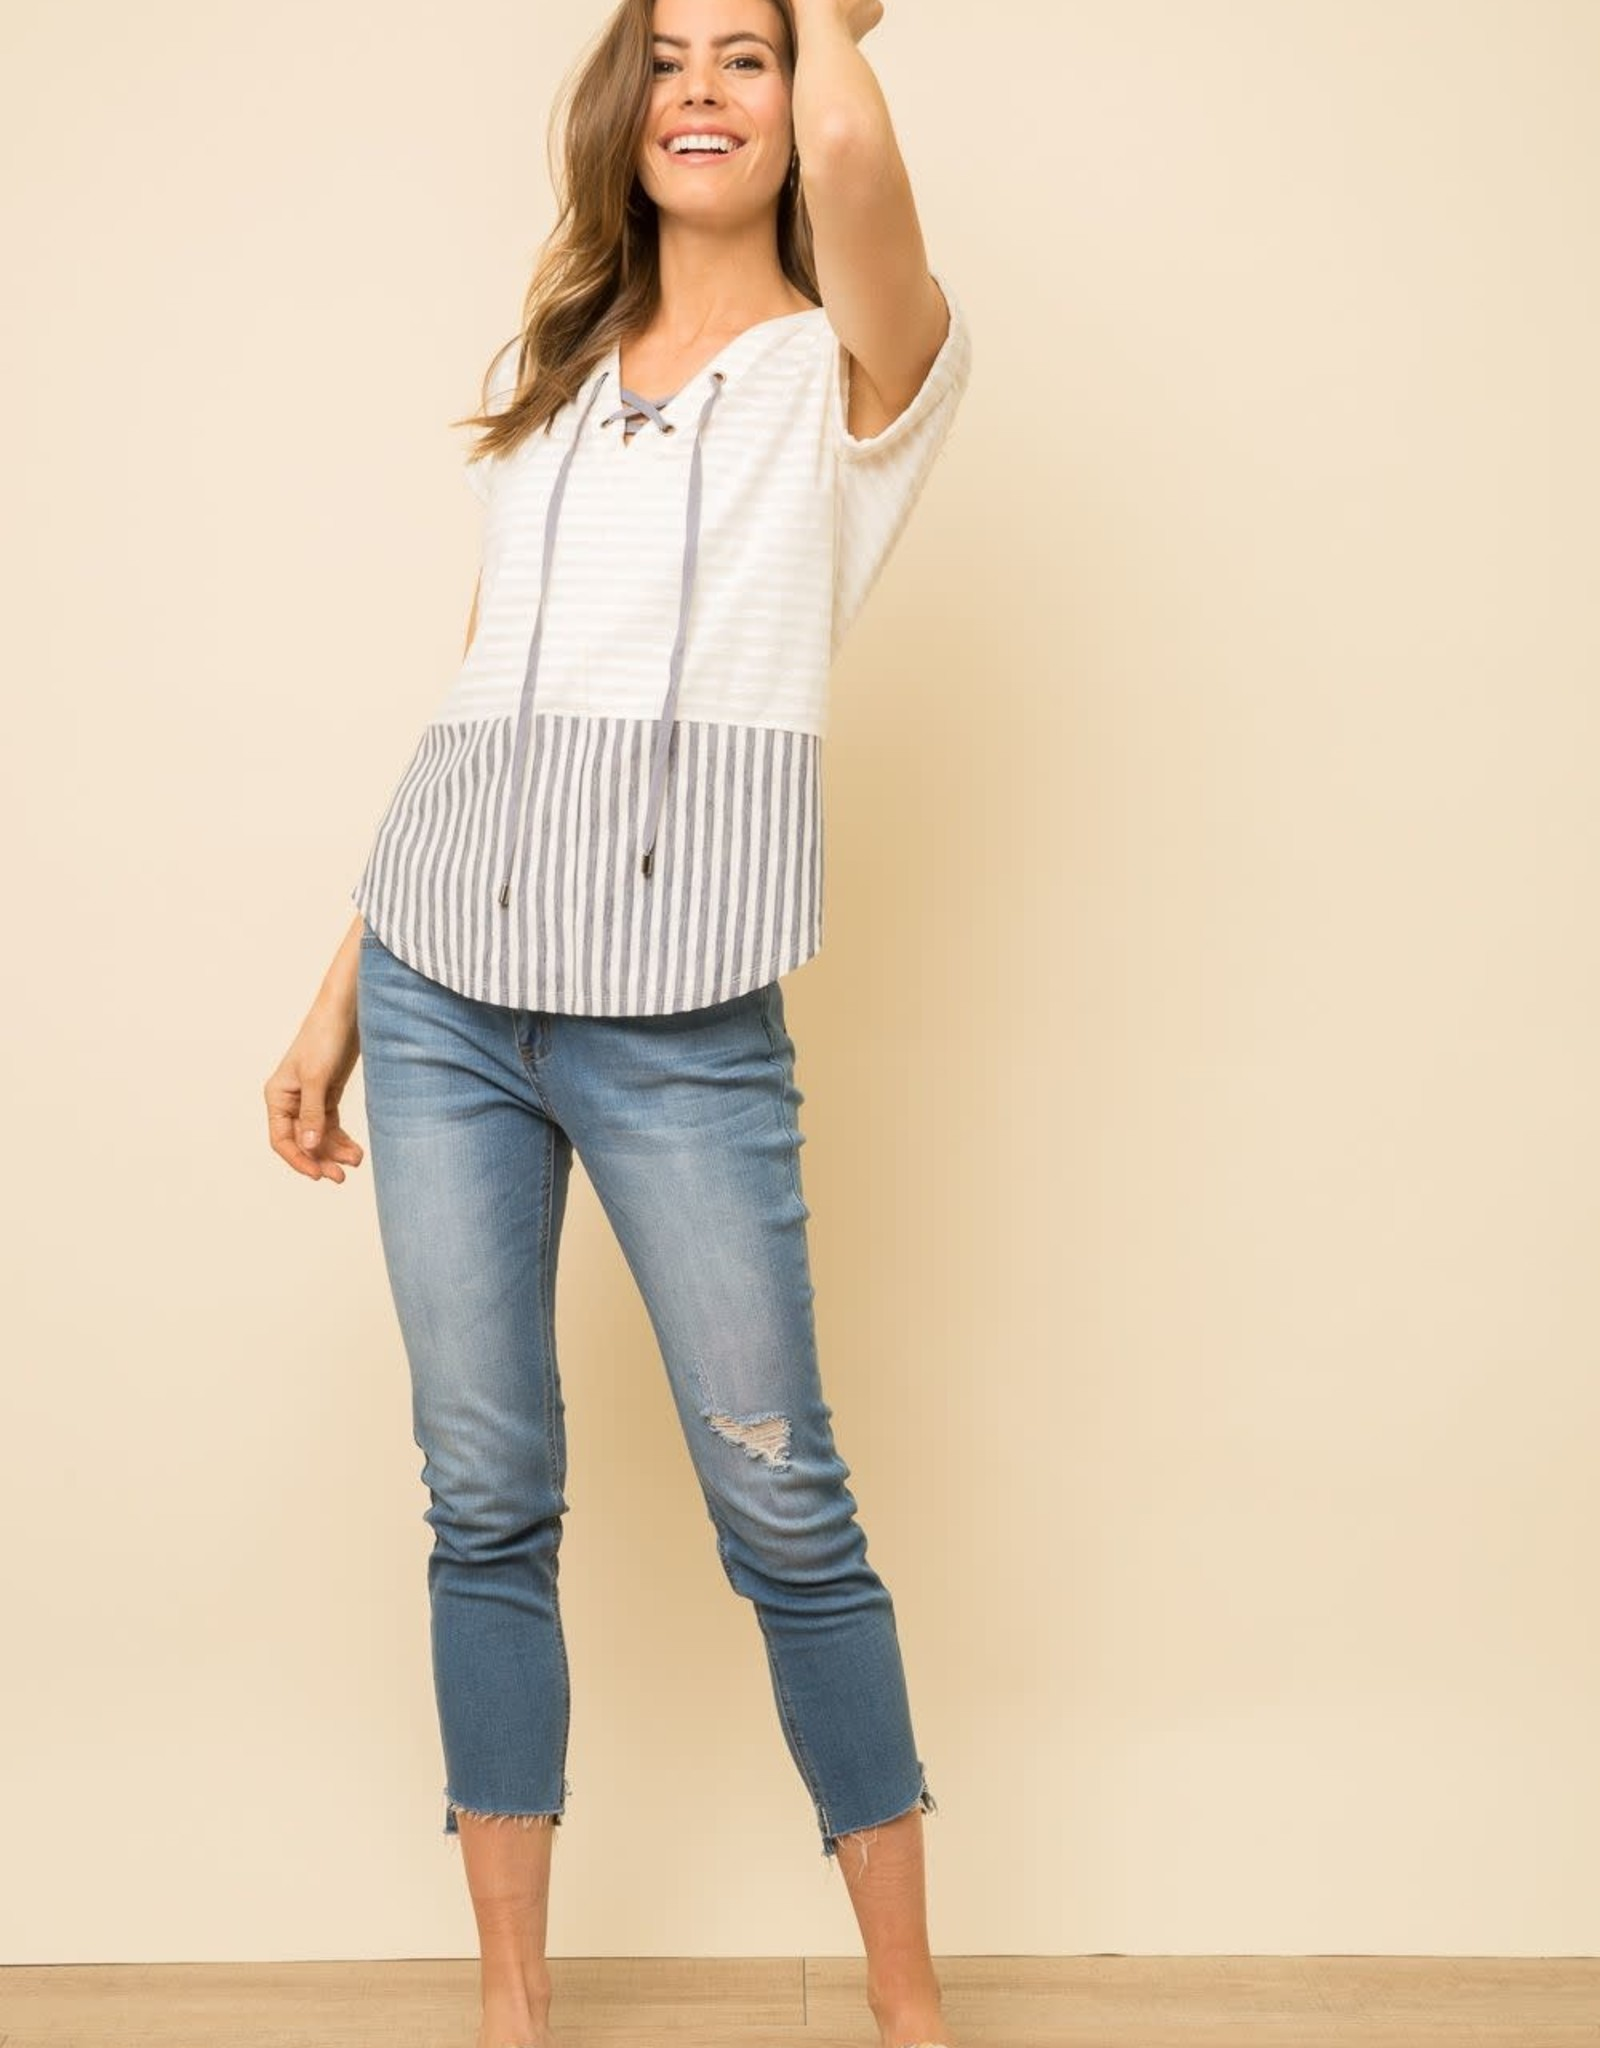 S/s lace-up top